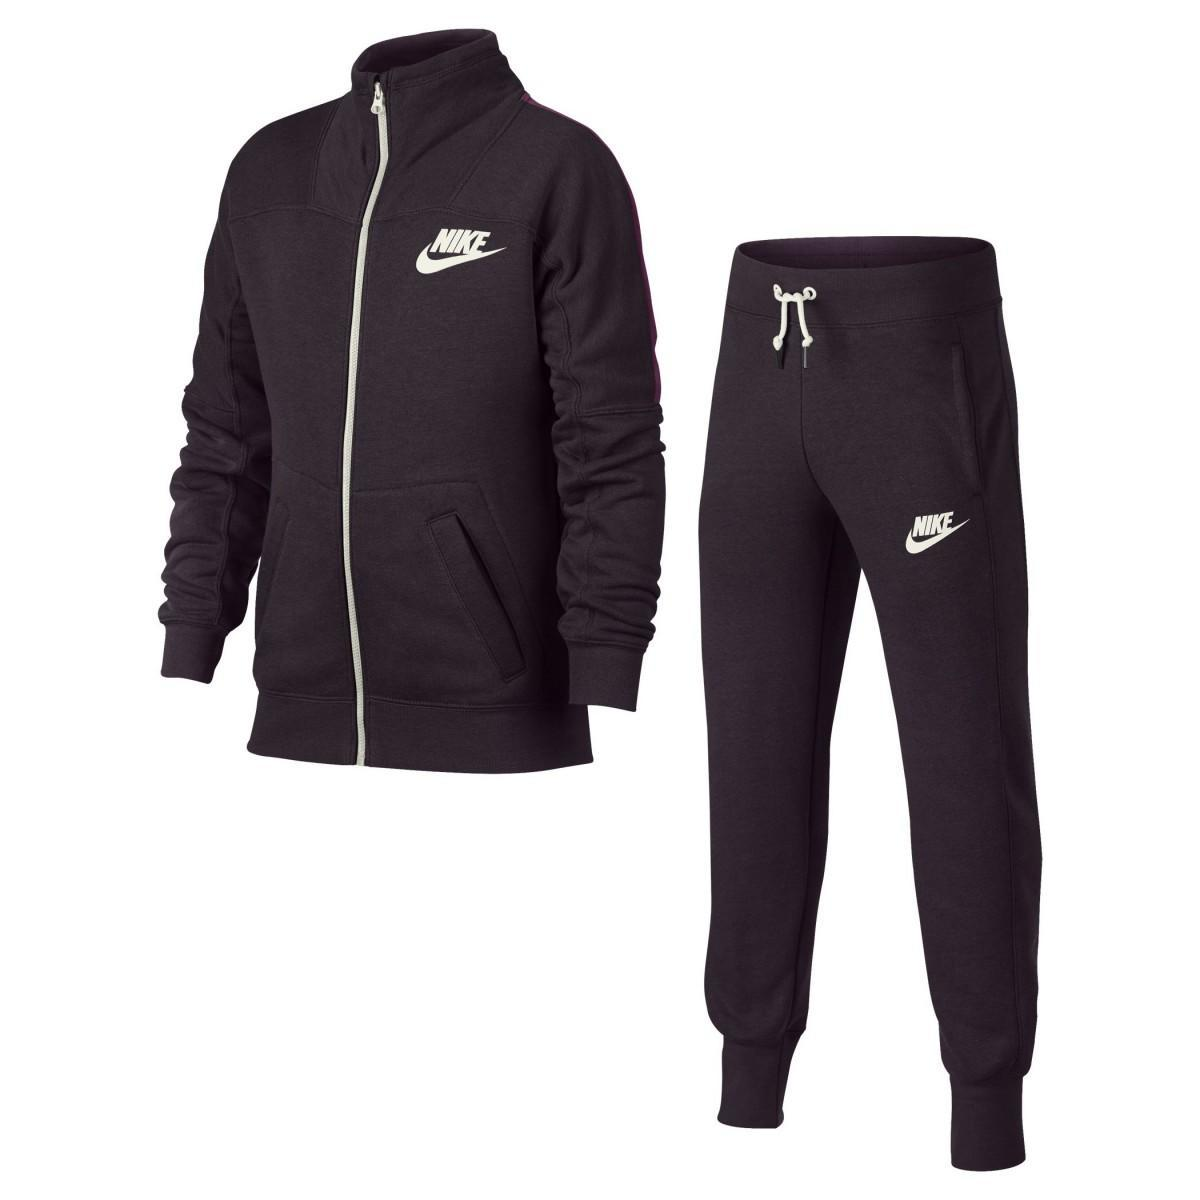 01c38f03 Спортивный костюм детский Nike Girl's NSW Track Suit Port Wine/Tea Berry &  Sail